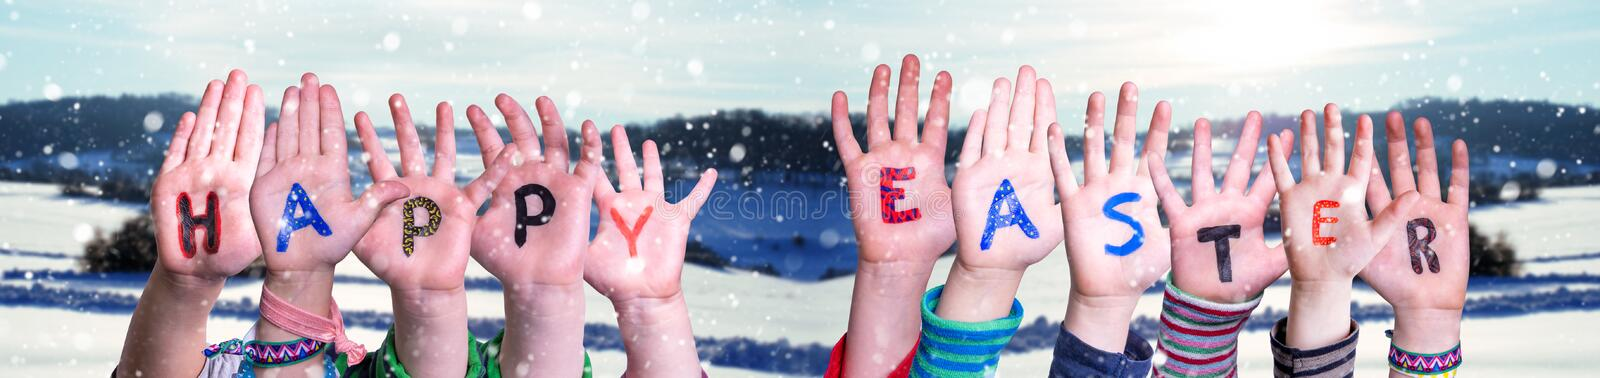 Children Hands Building Word Happy Easter, Winter Scenery royalty free stock photography